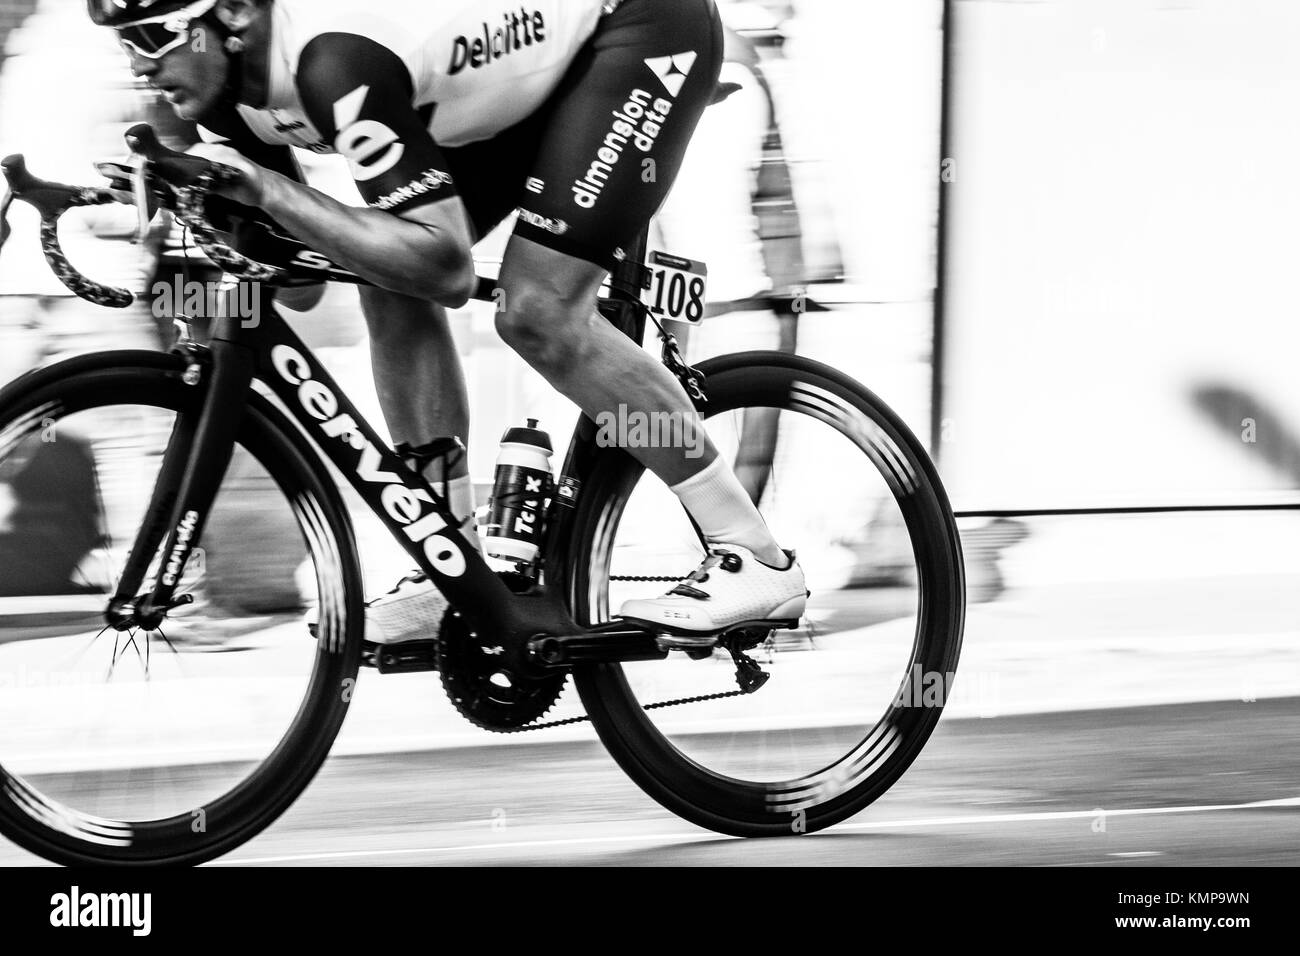 Imperia, IM, Liguria, Italy - March 20, 2016: An important cycling race in a small town in Italy in March. The name - Stock Image